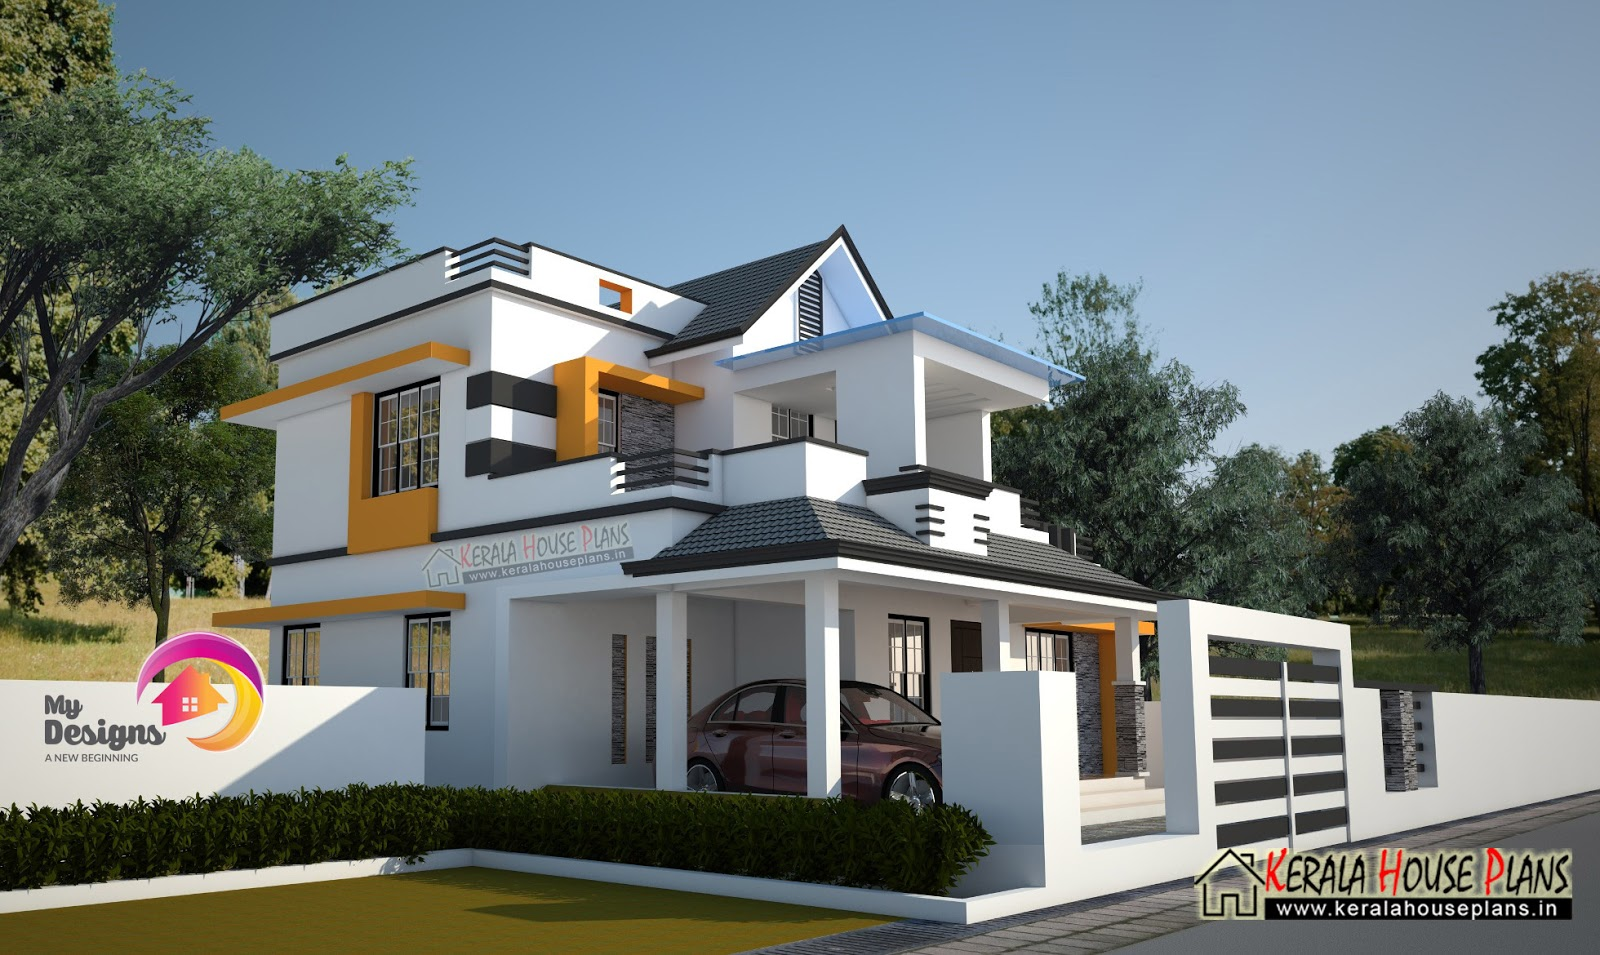 3 bedroom 2 story house design kerala house plans for House plans and designs